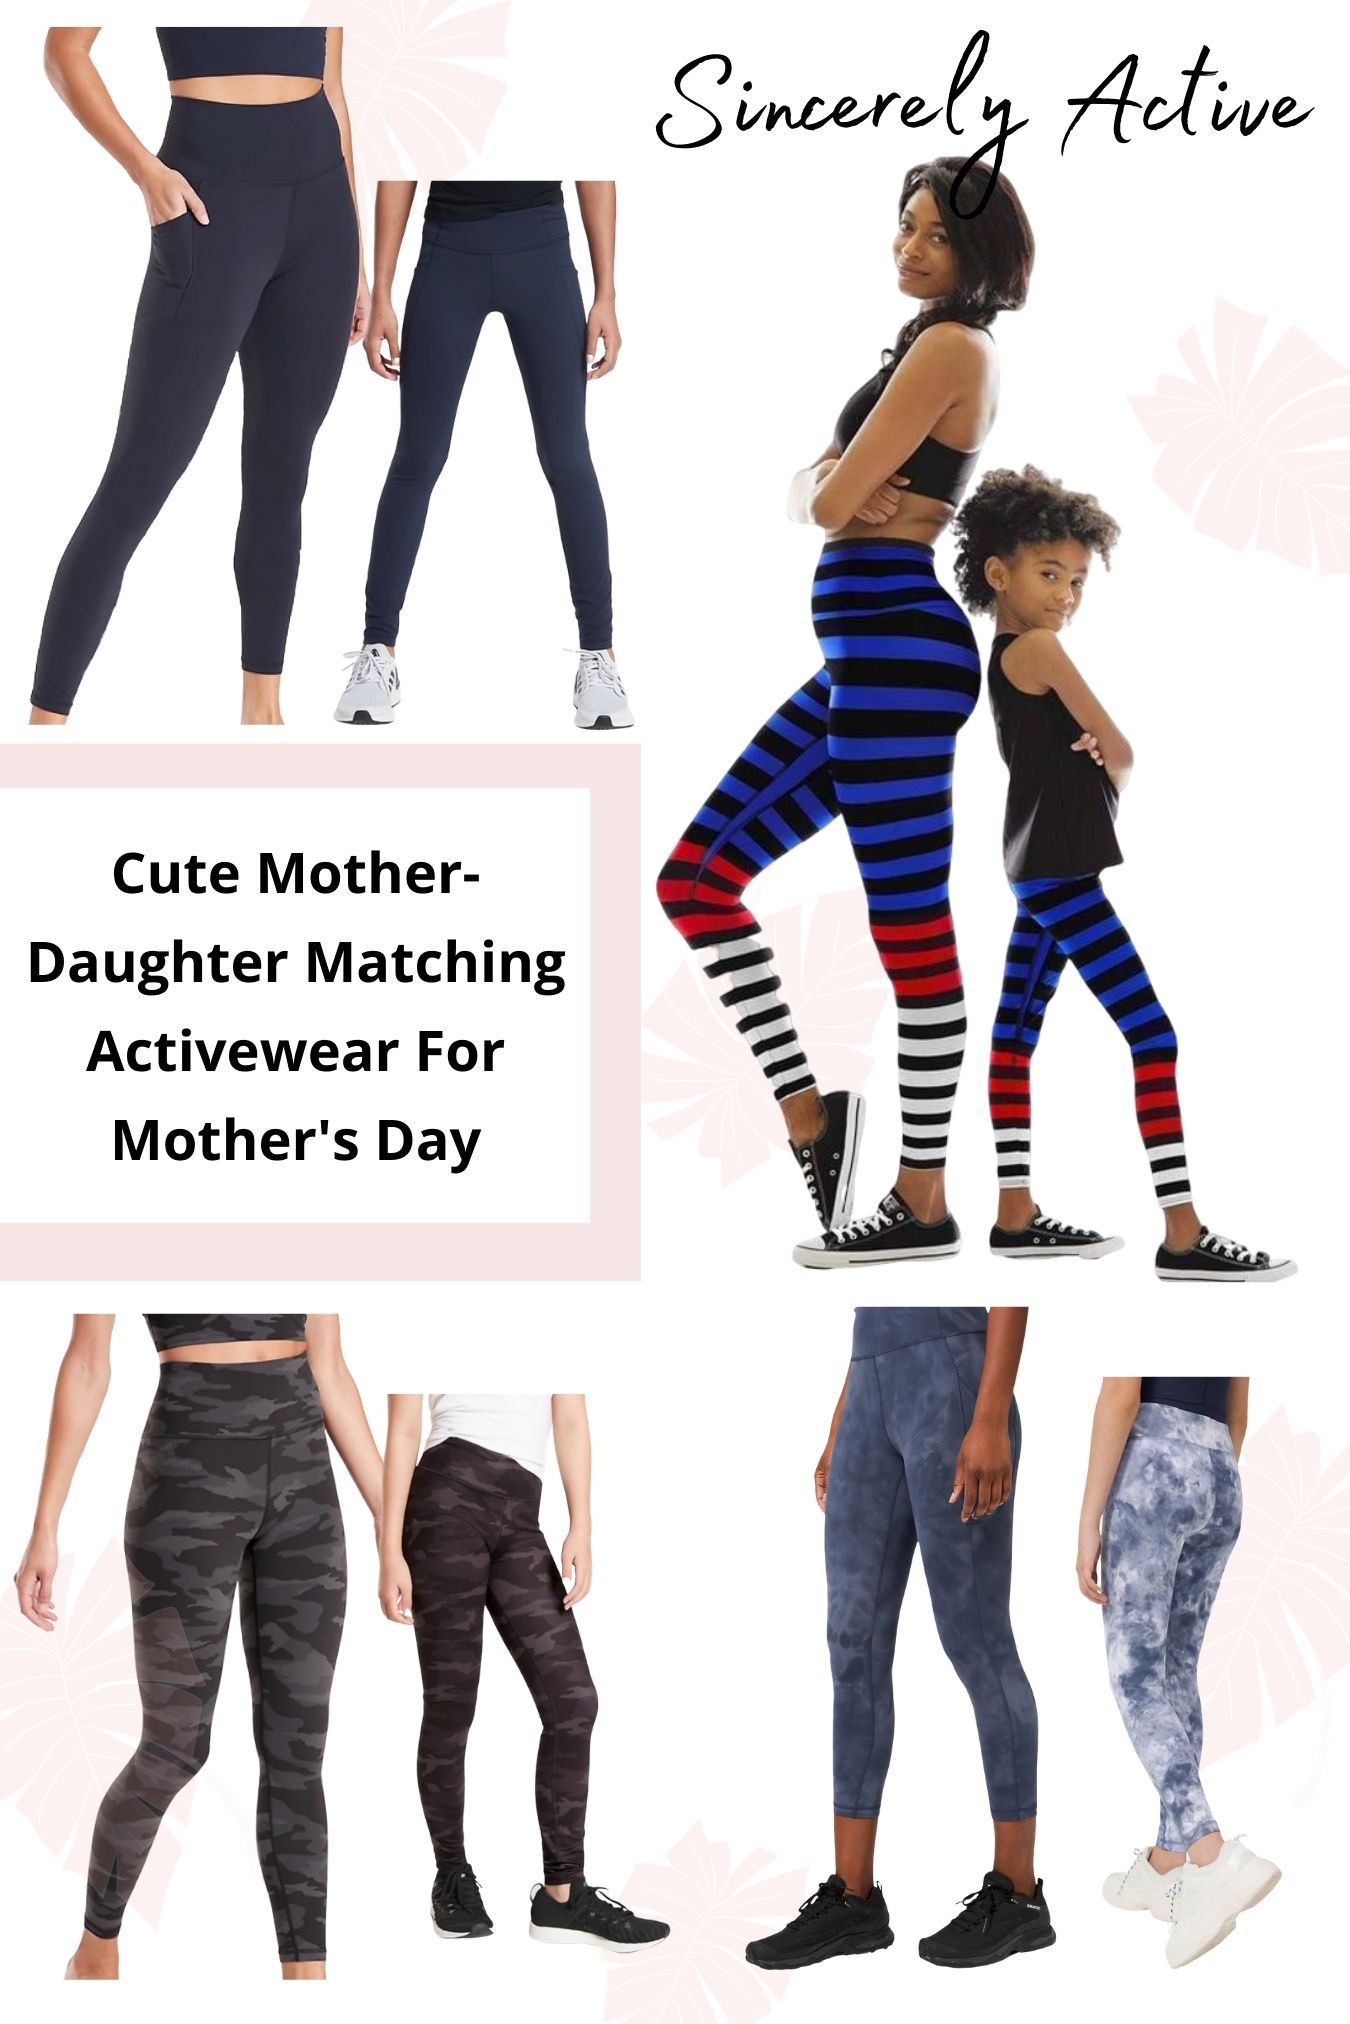 Mother-Daughter Matching Activewear Styles For Mother's Day